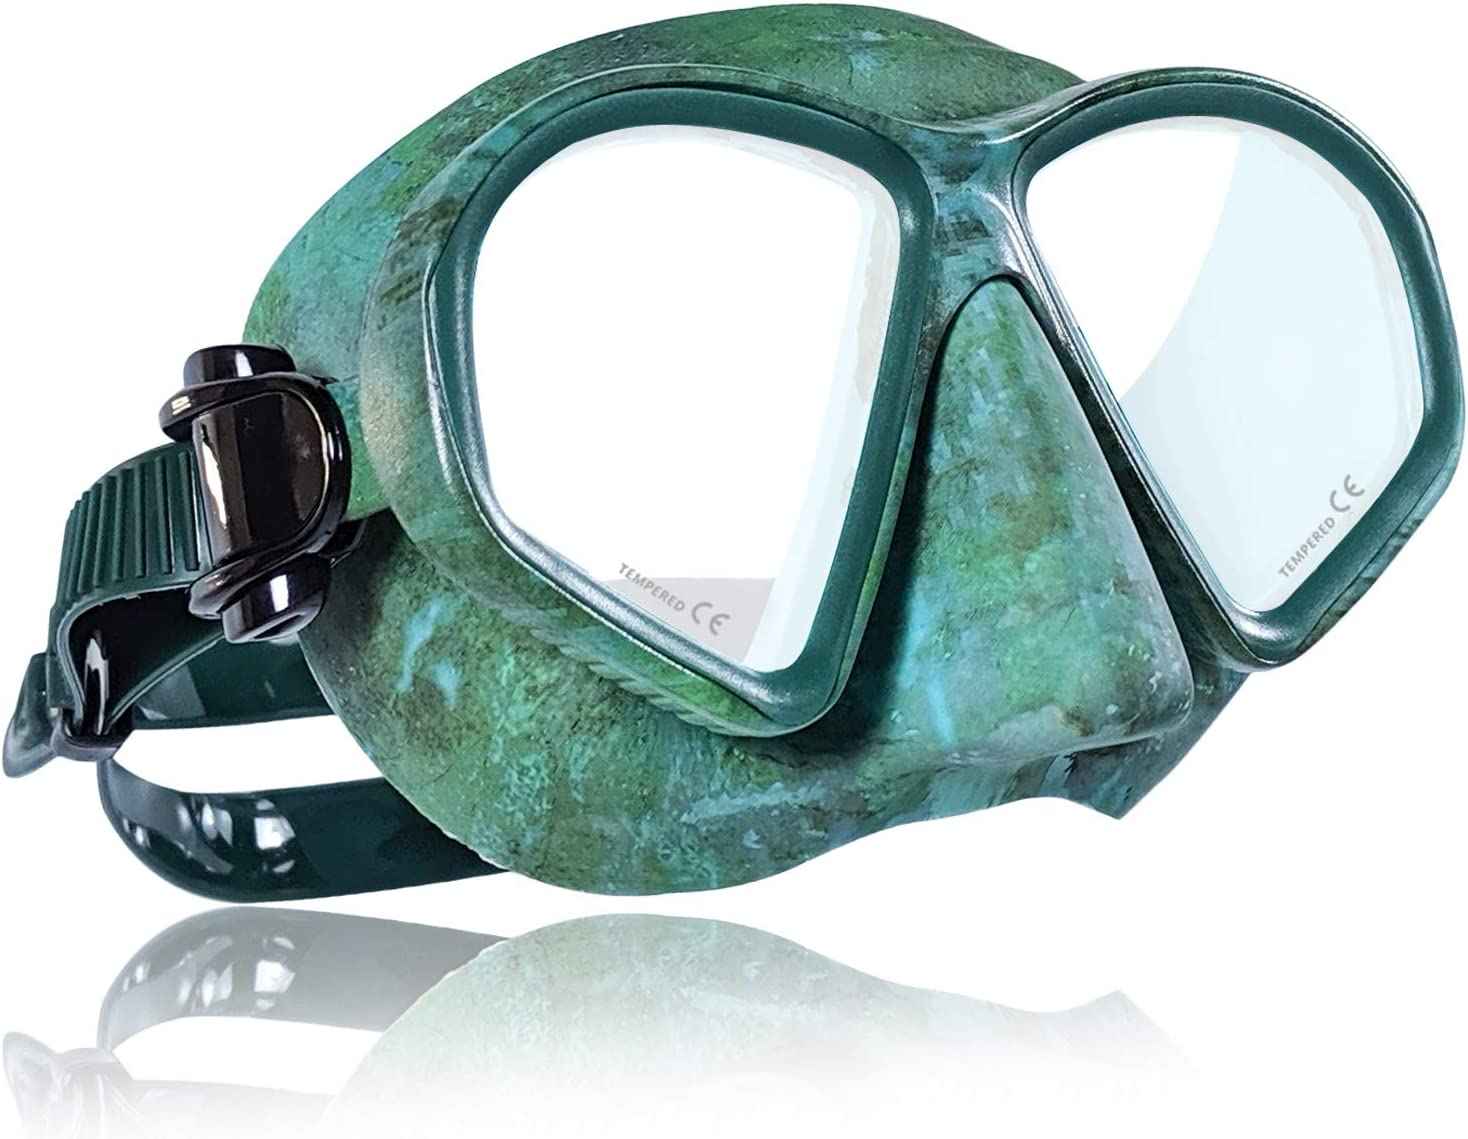 Tilos Spawn Camo Spearfishing Mask for Spearfishing, Free Diving, Scuba Diving and Snorkeling